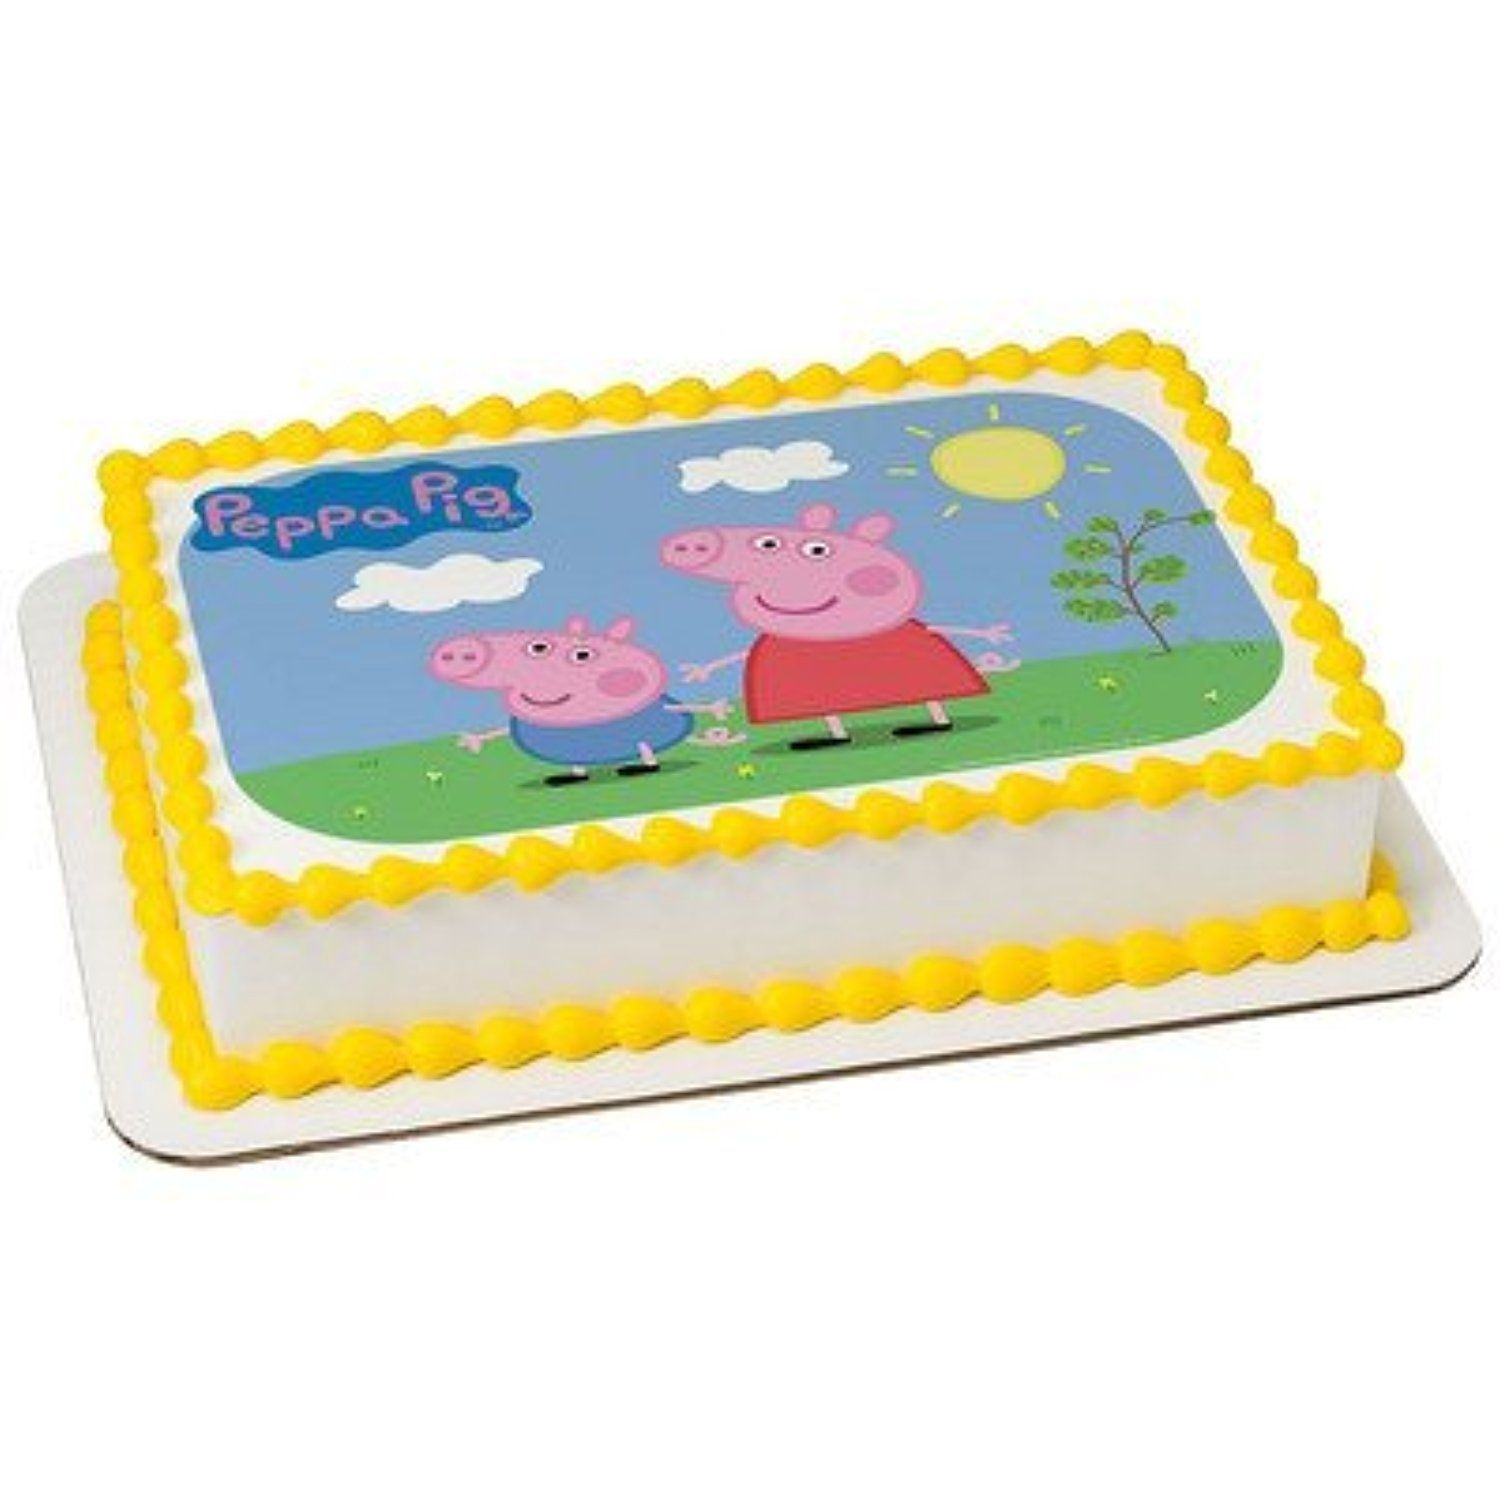 1 2 Sheet Peppa Pig Sunny Days Edible Image Cake Topper By A Birthday Place Awesome Products Selected Anna Churchill